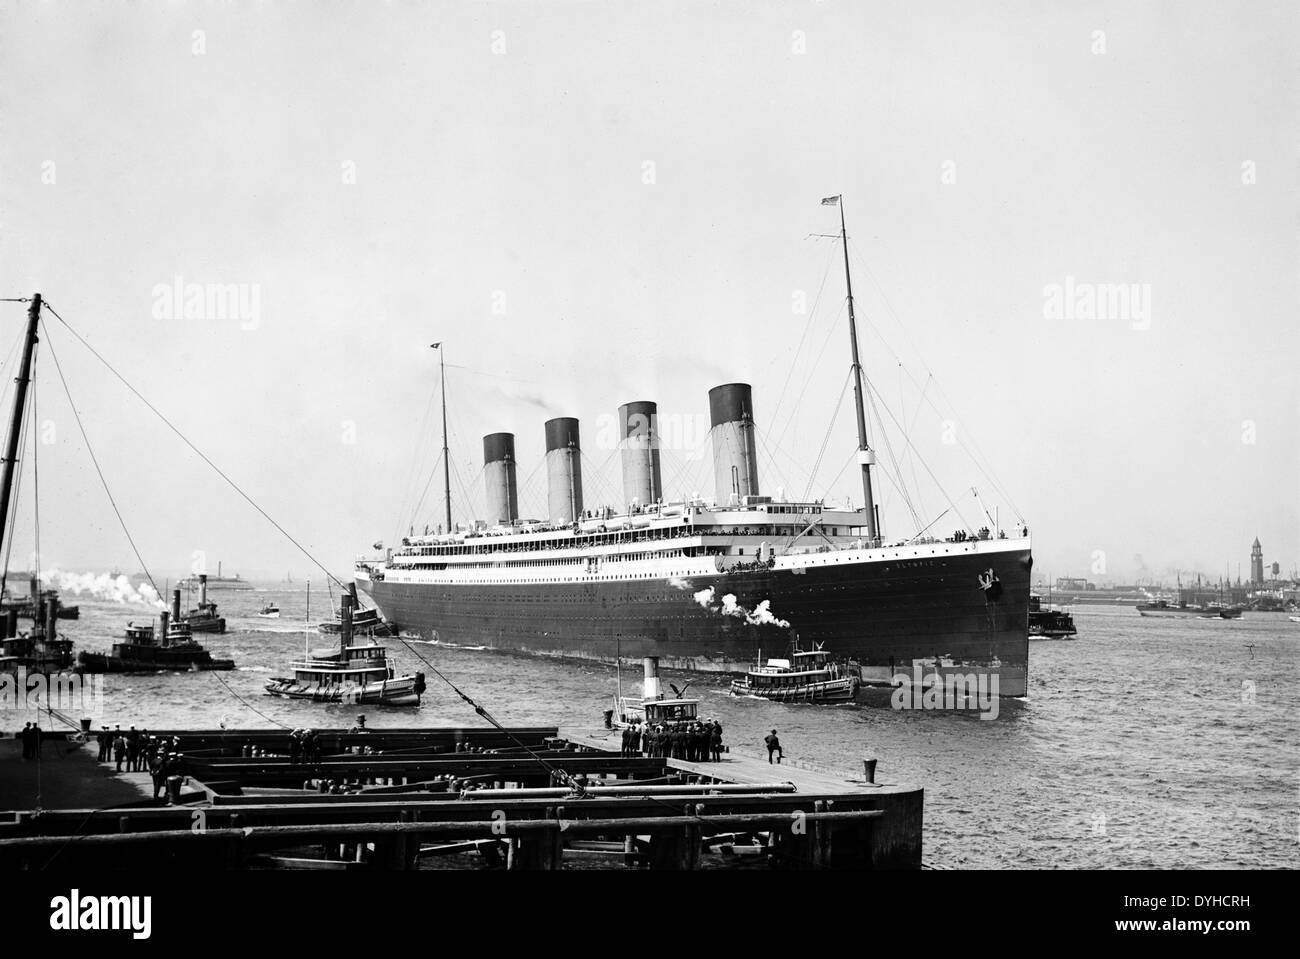 RMS OLYMPIC ocean liner arriving in New York on her maiden voyage on 21 June 1911 - Stock Image